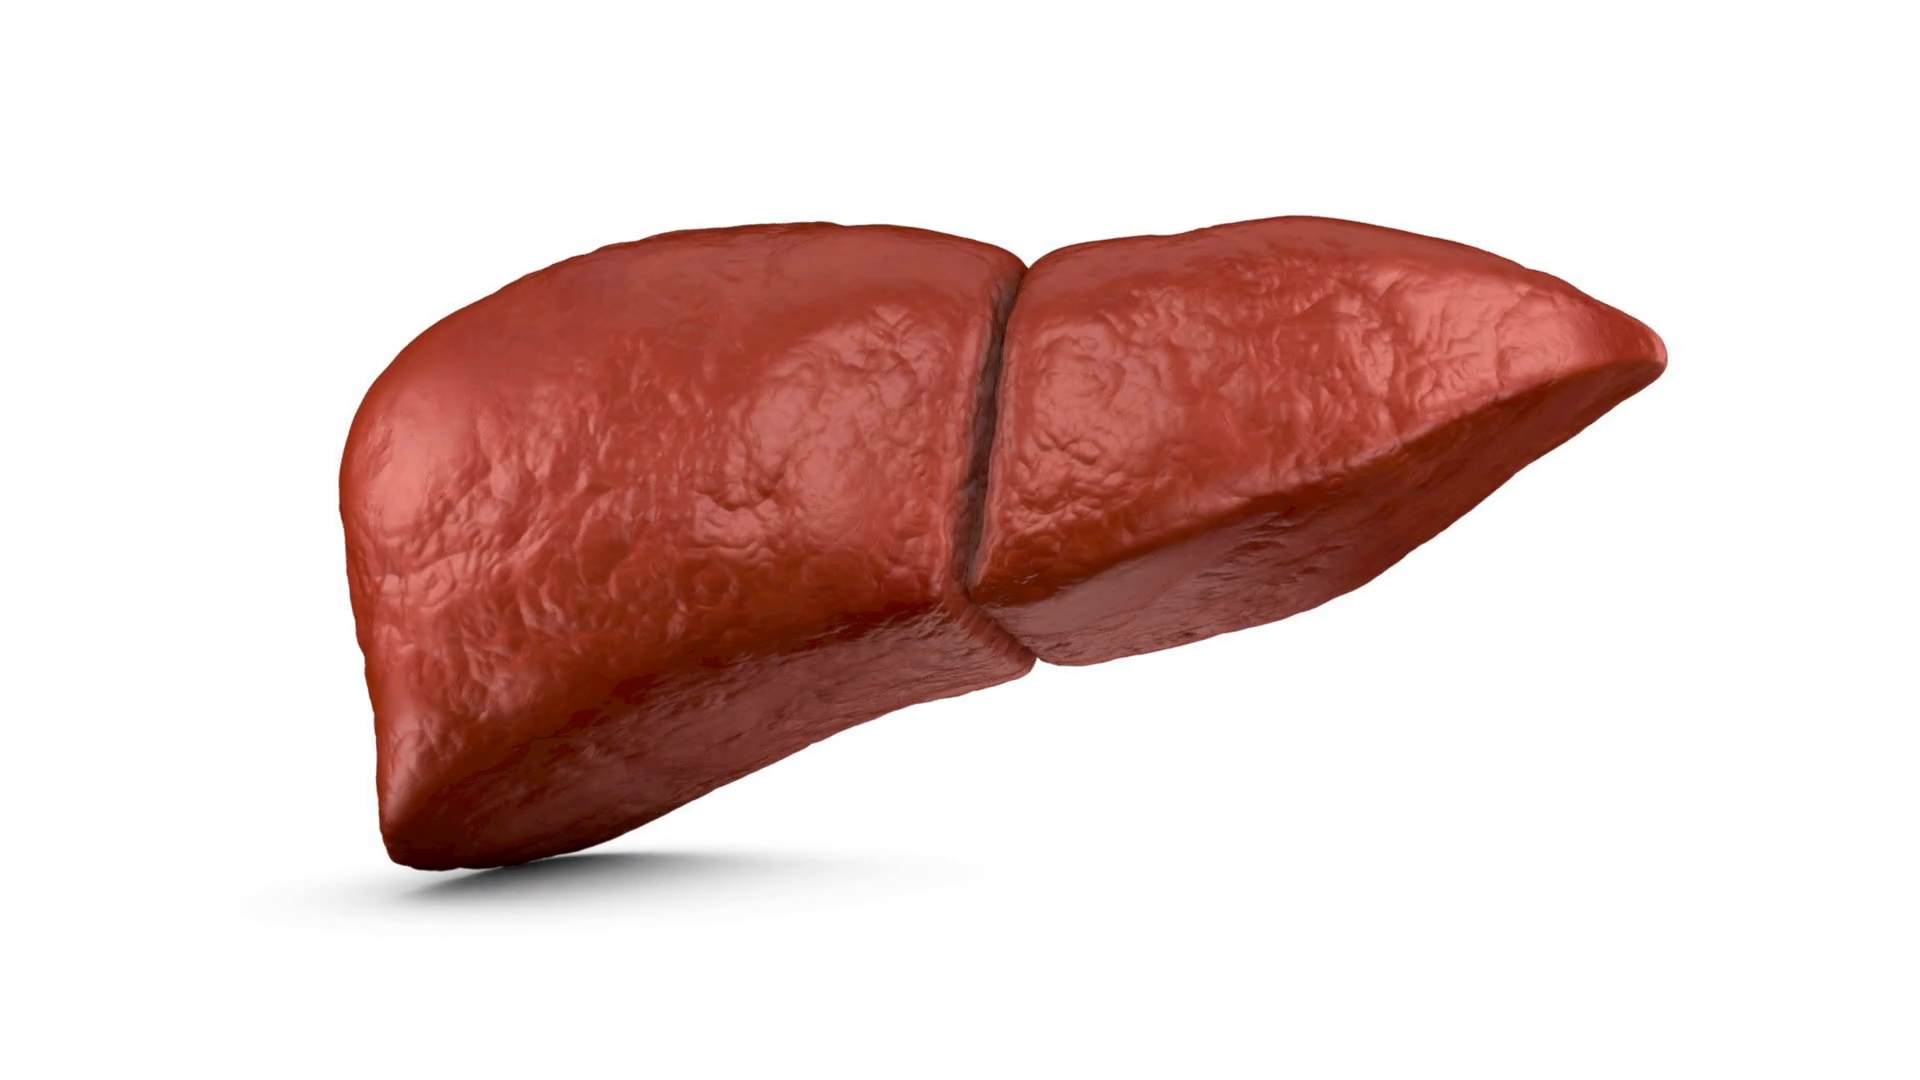 human liver on a white background 3d render Motion Background 1920x1080